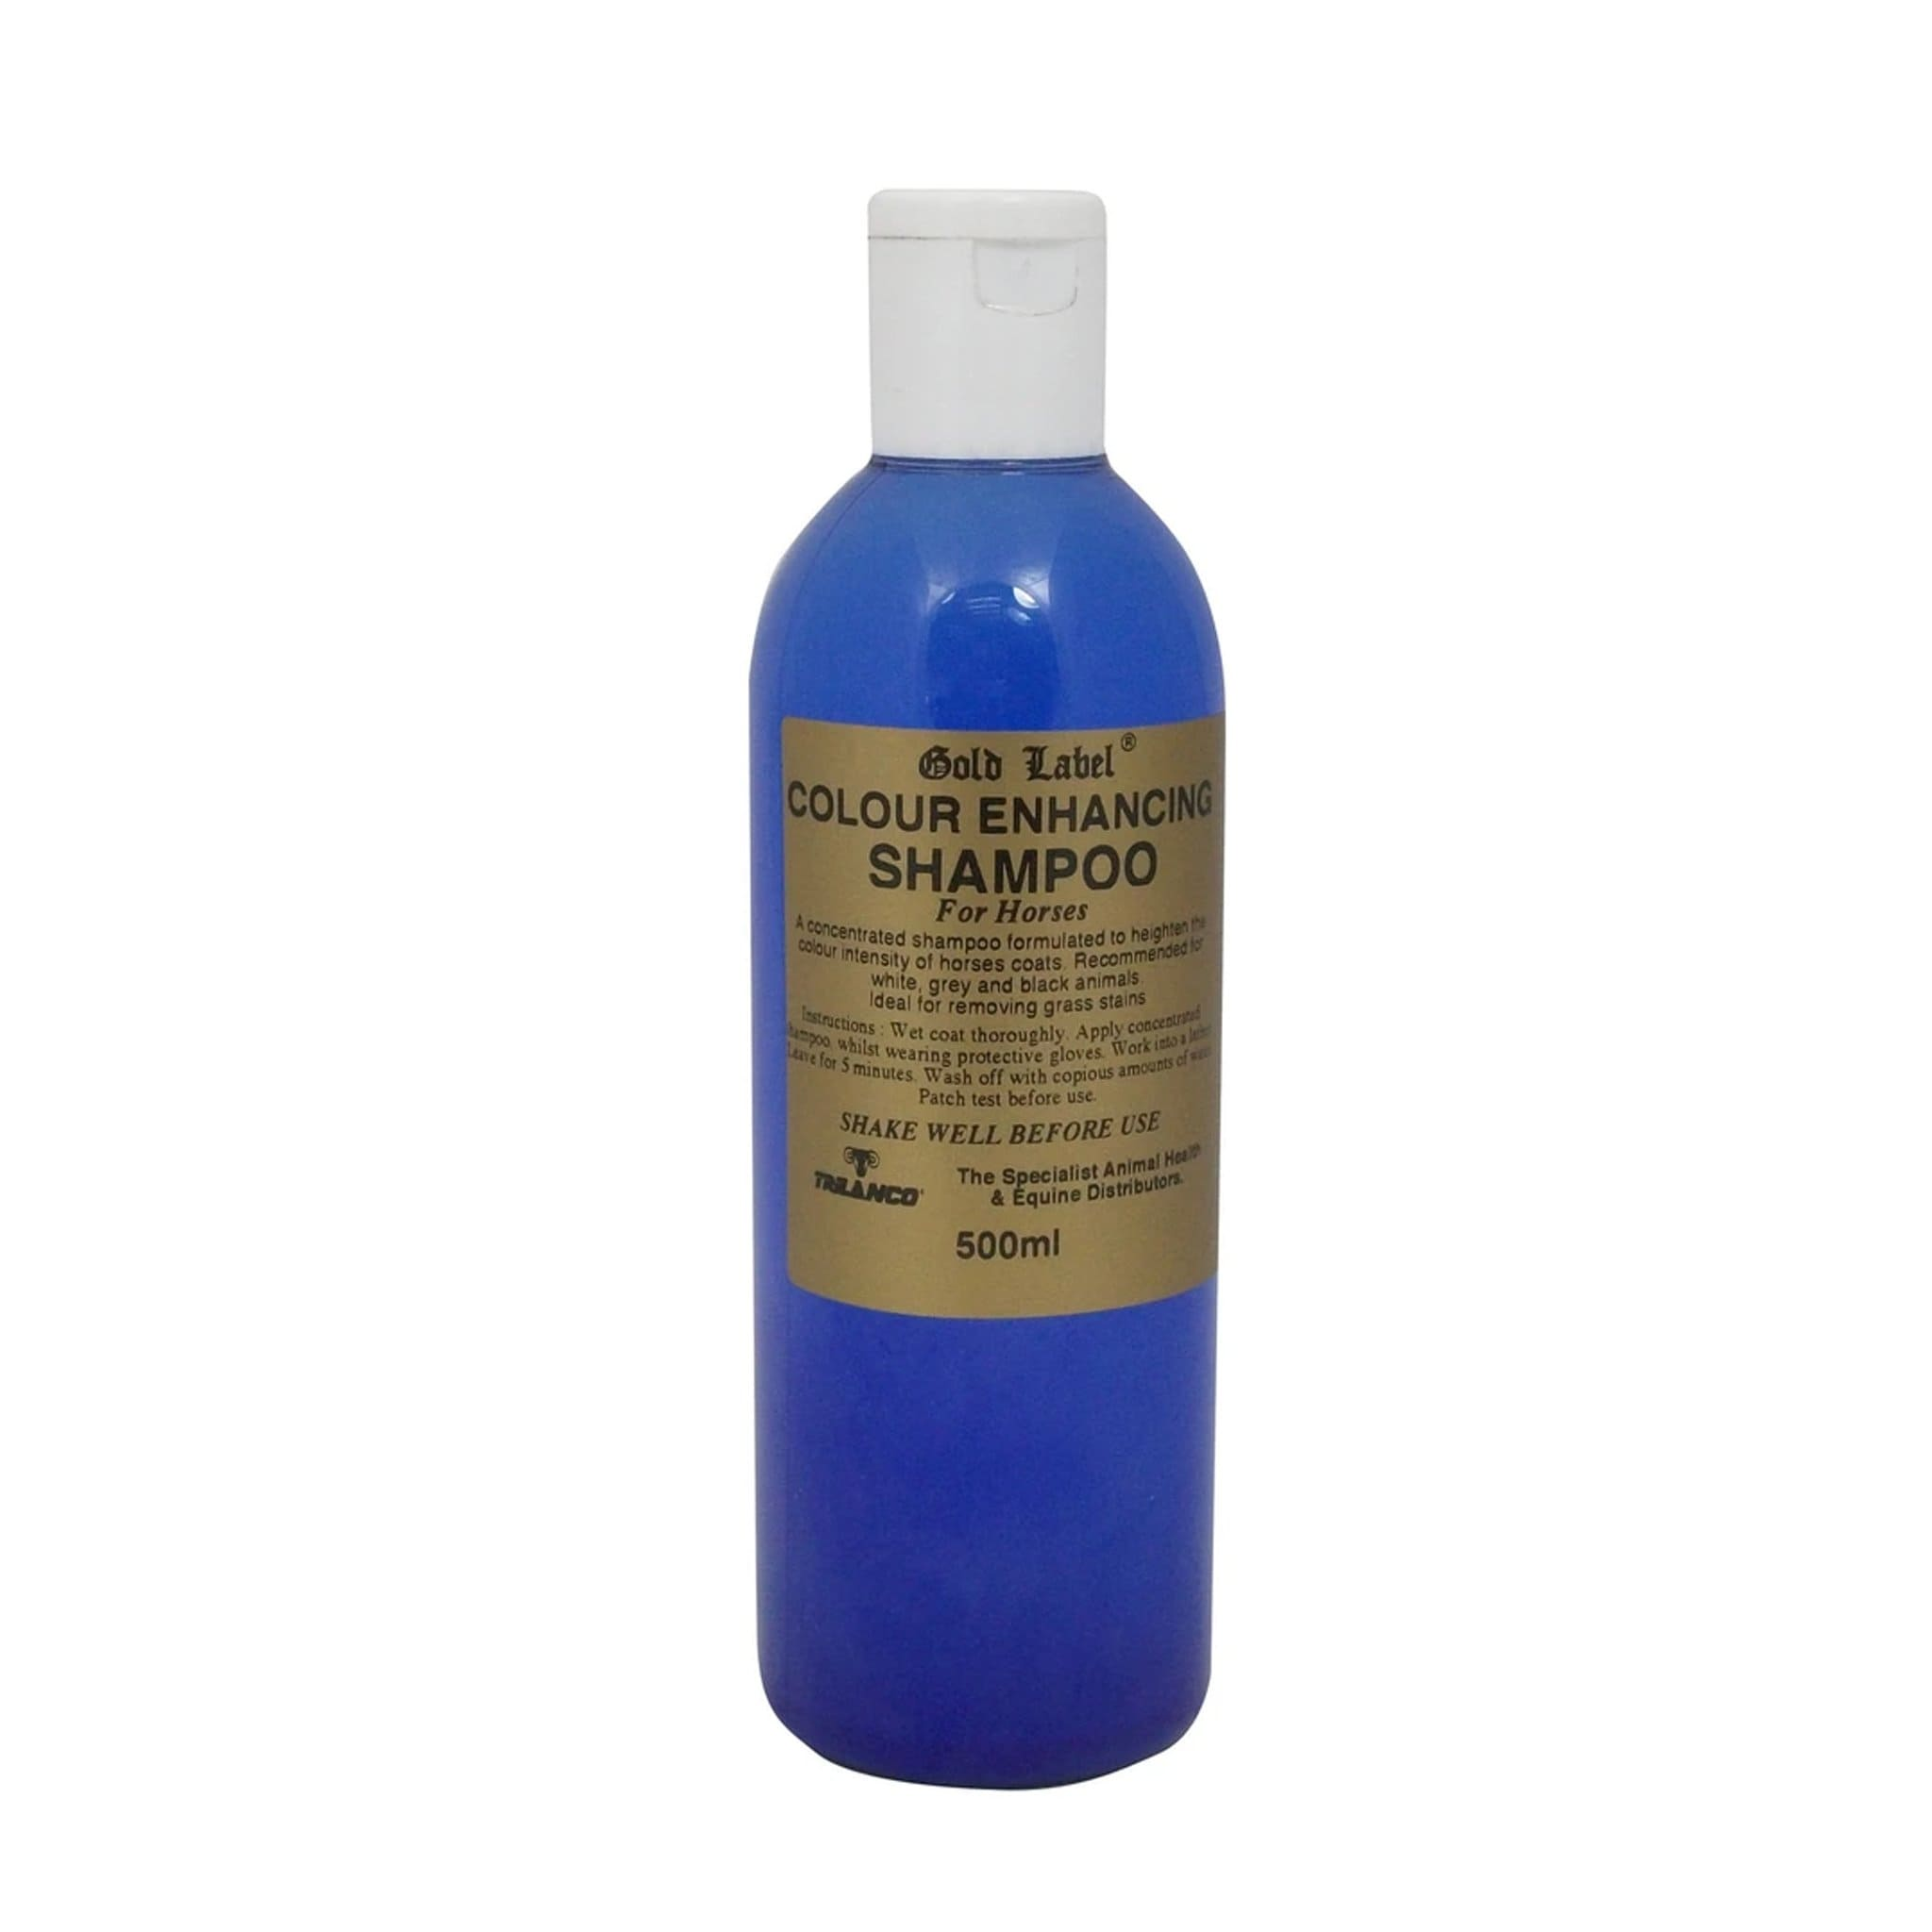 Gold Label Colour Enhancing Shampoo 500ml GLD0193